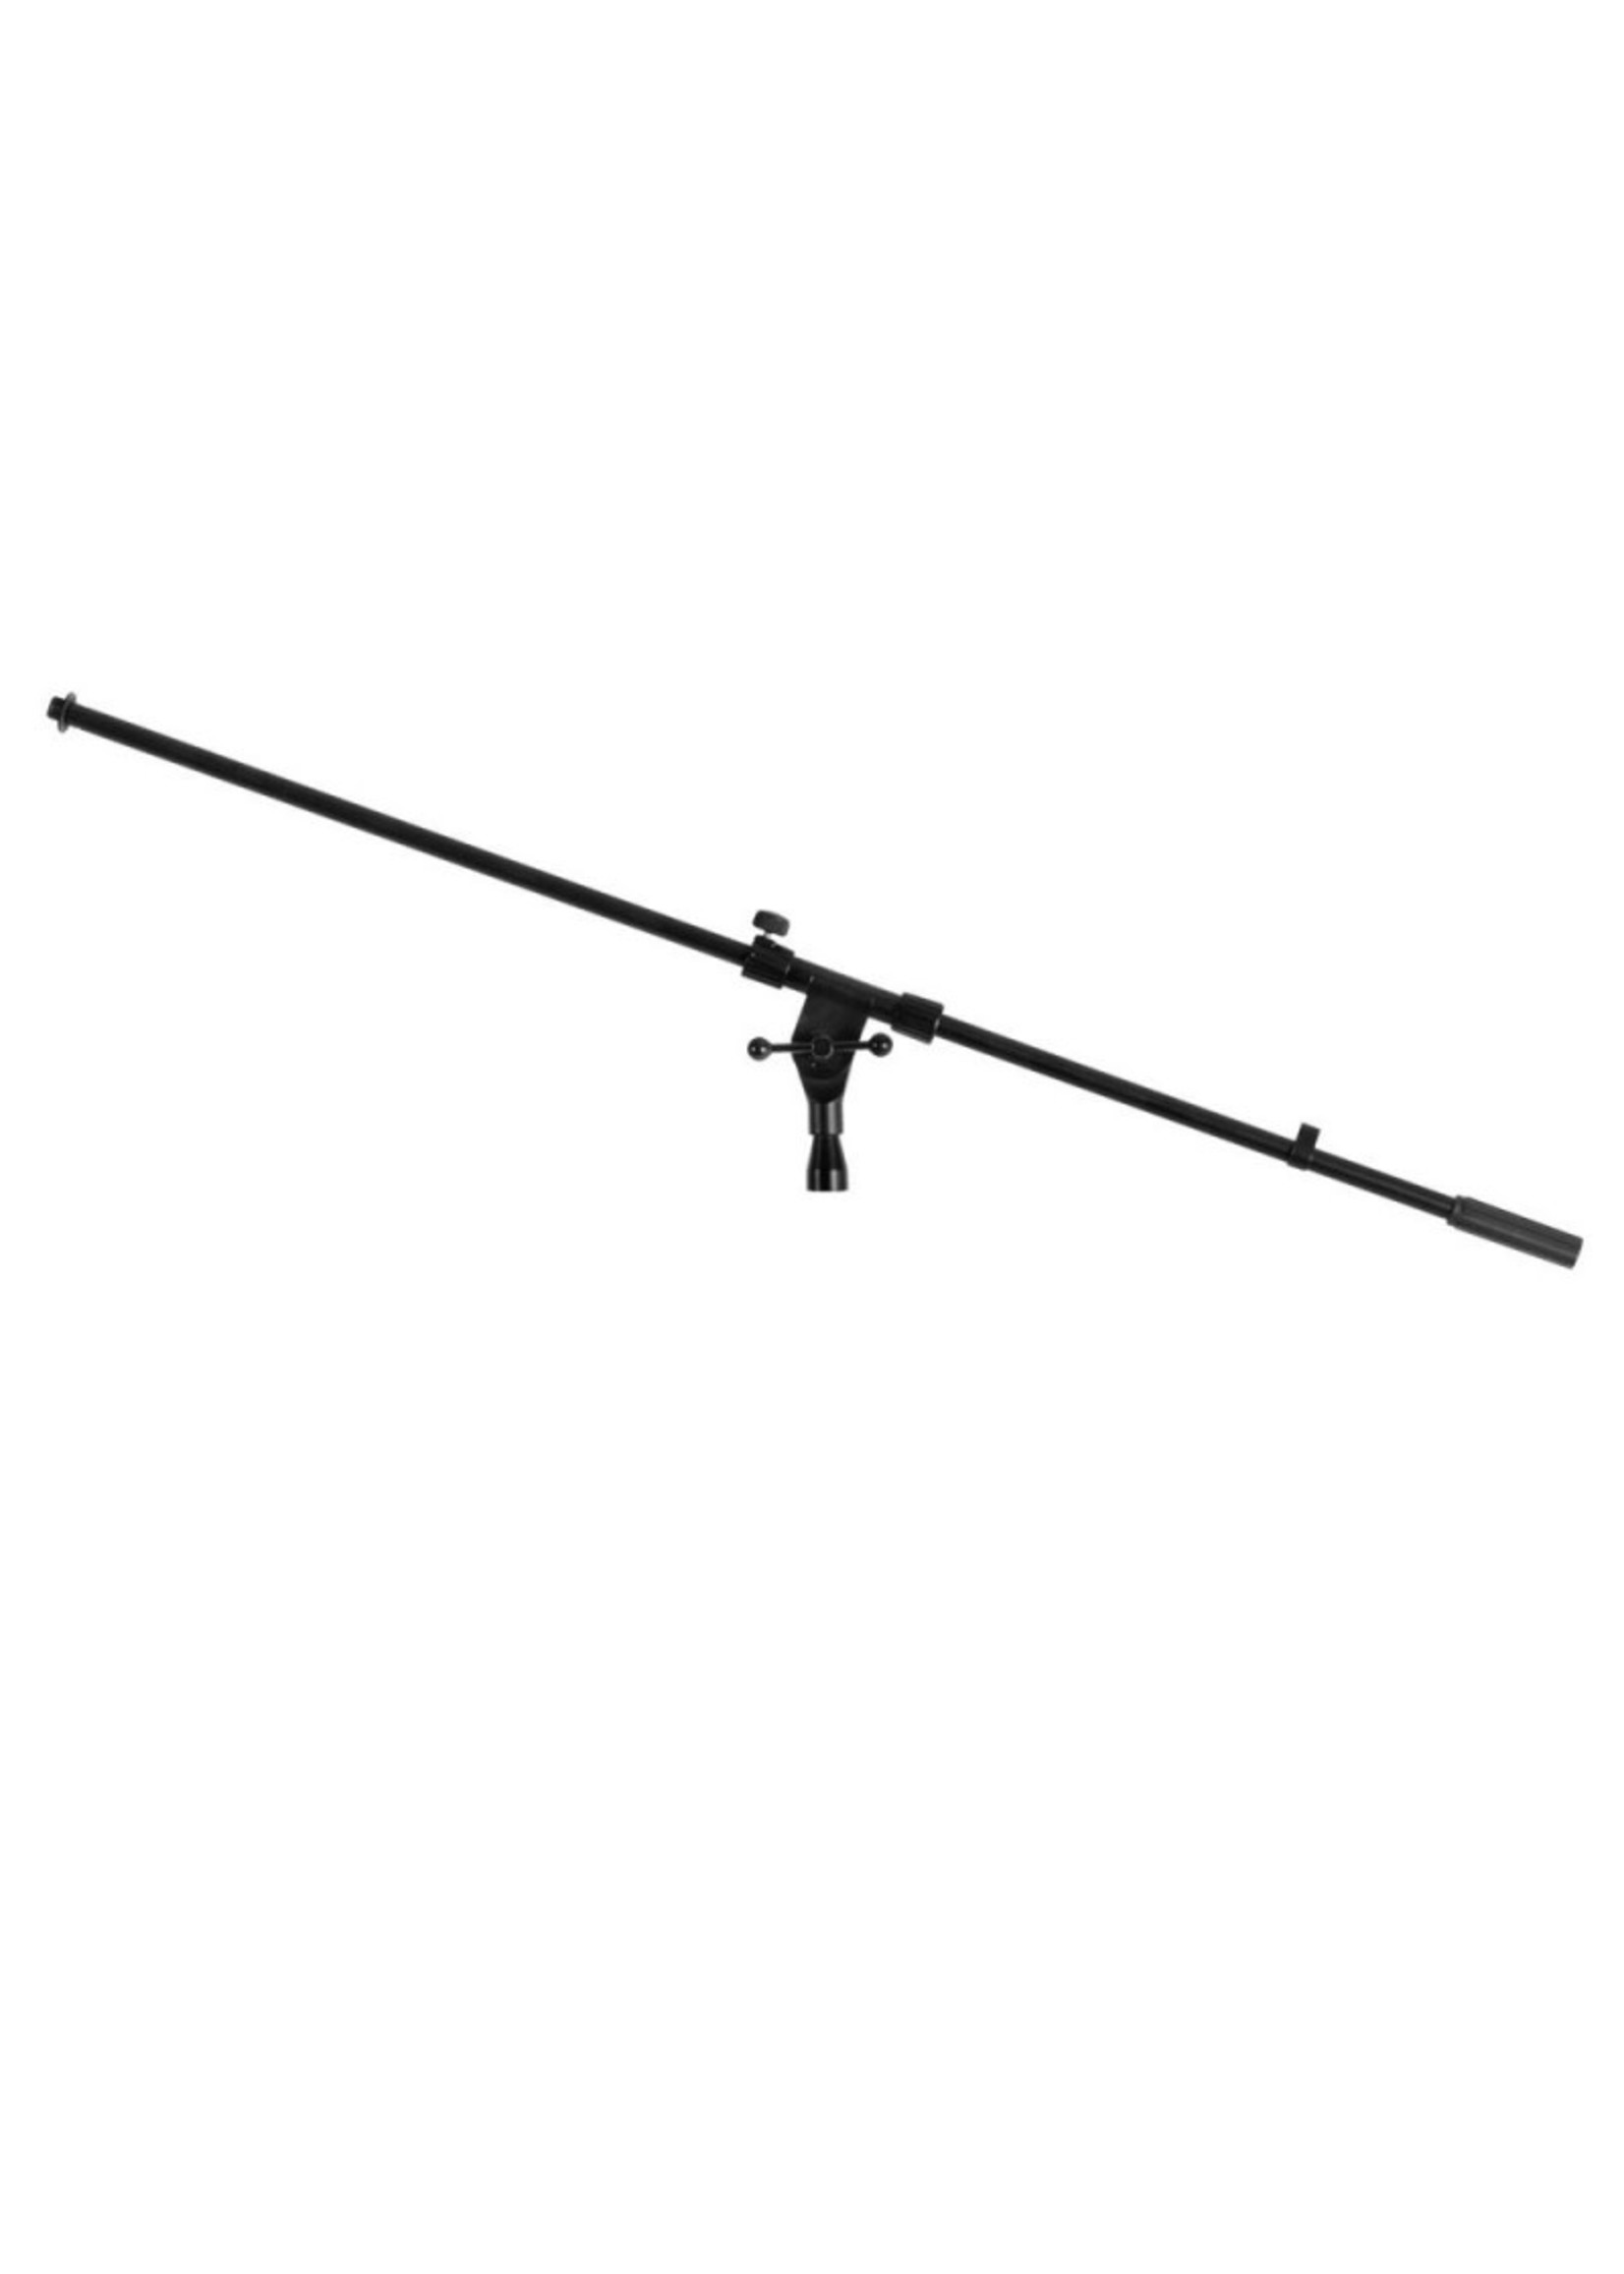 On-Stage Stands Fixed Length Mic Boom -L:35in -Top Mount